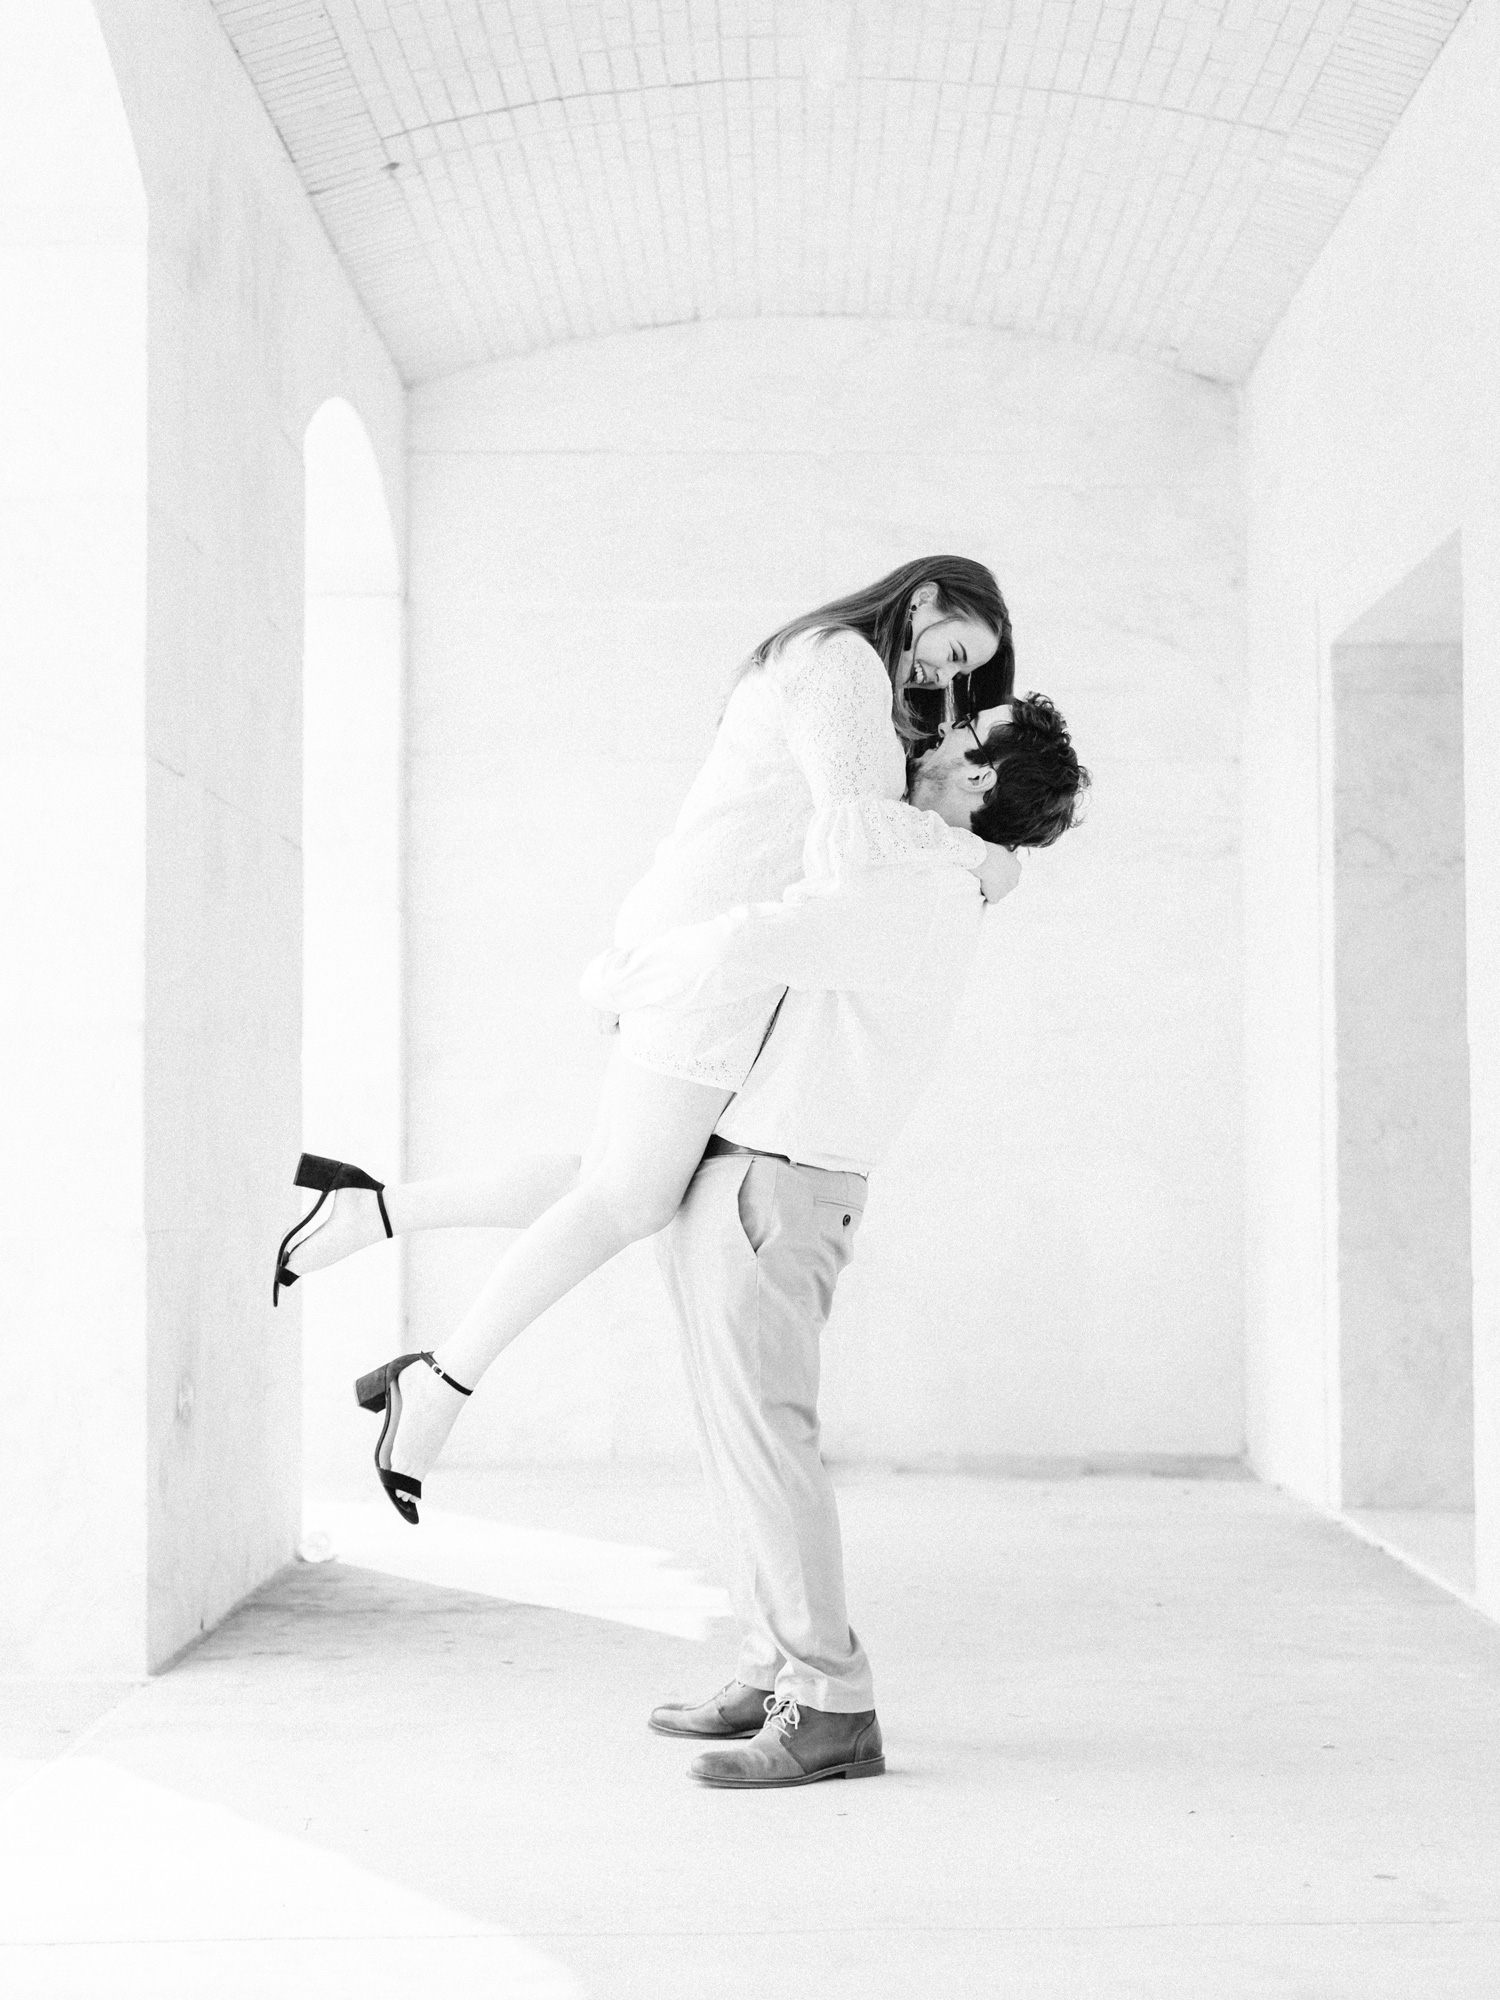 A man playfully lifts his woman off the ground as they laugh in a white marble corridor, after choosing the engagement photo location of the DIA in Detroit